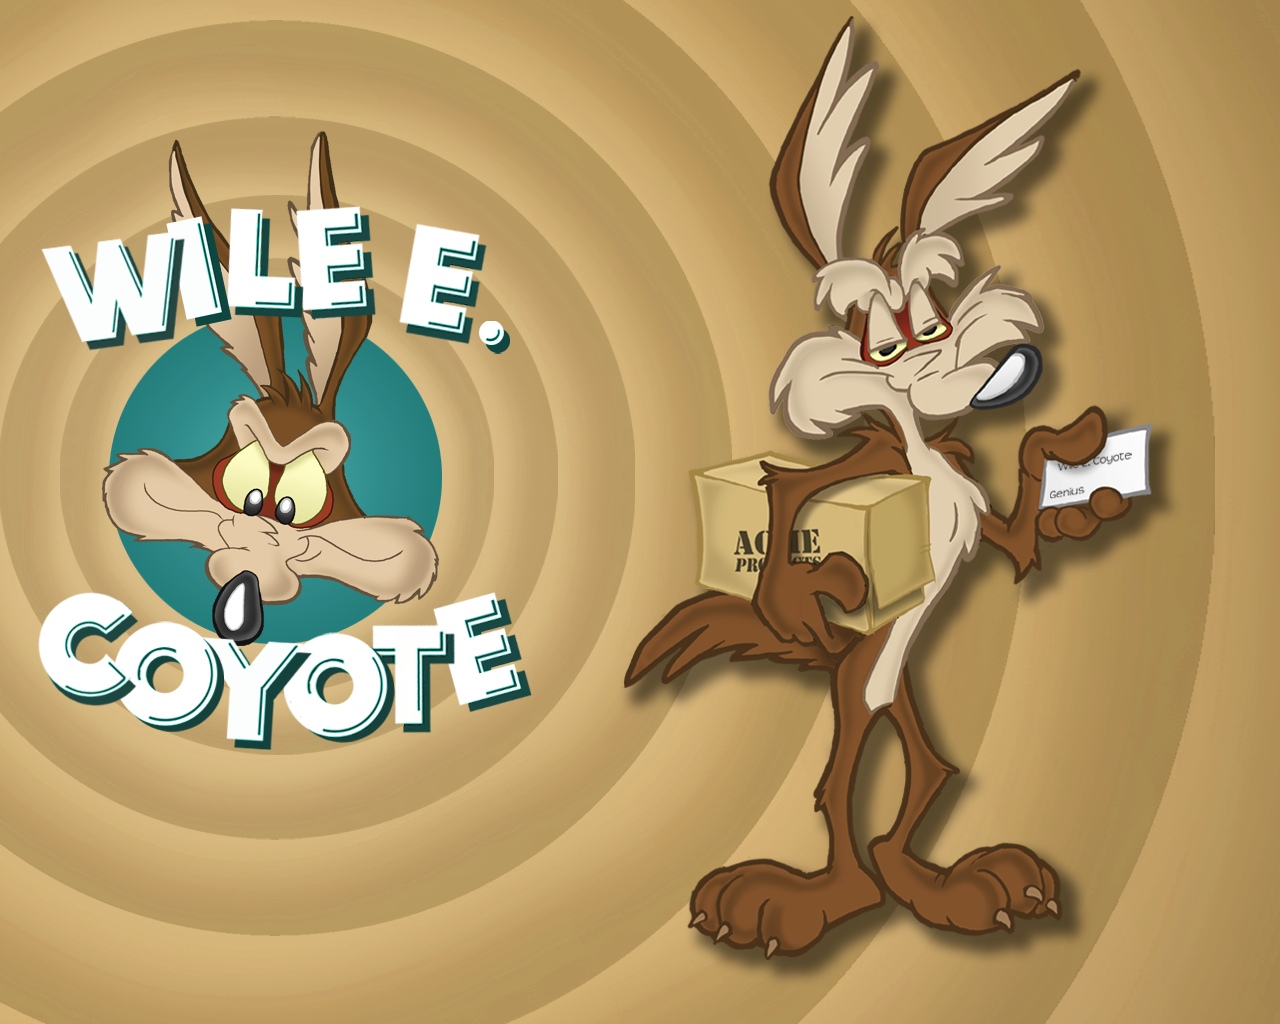 Wile E Coyote Backgrounds, Compatible - PC, Mobile, Gadgets| 1280x1024 px